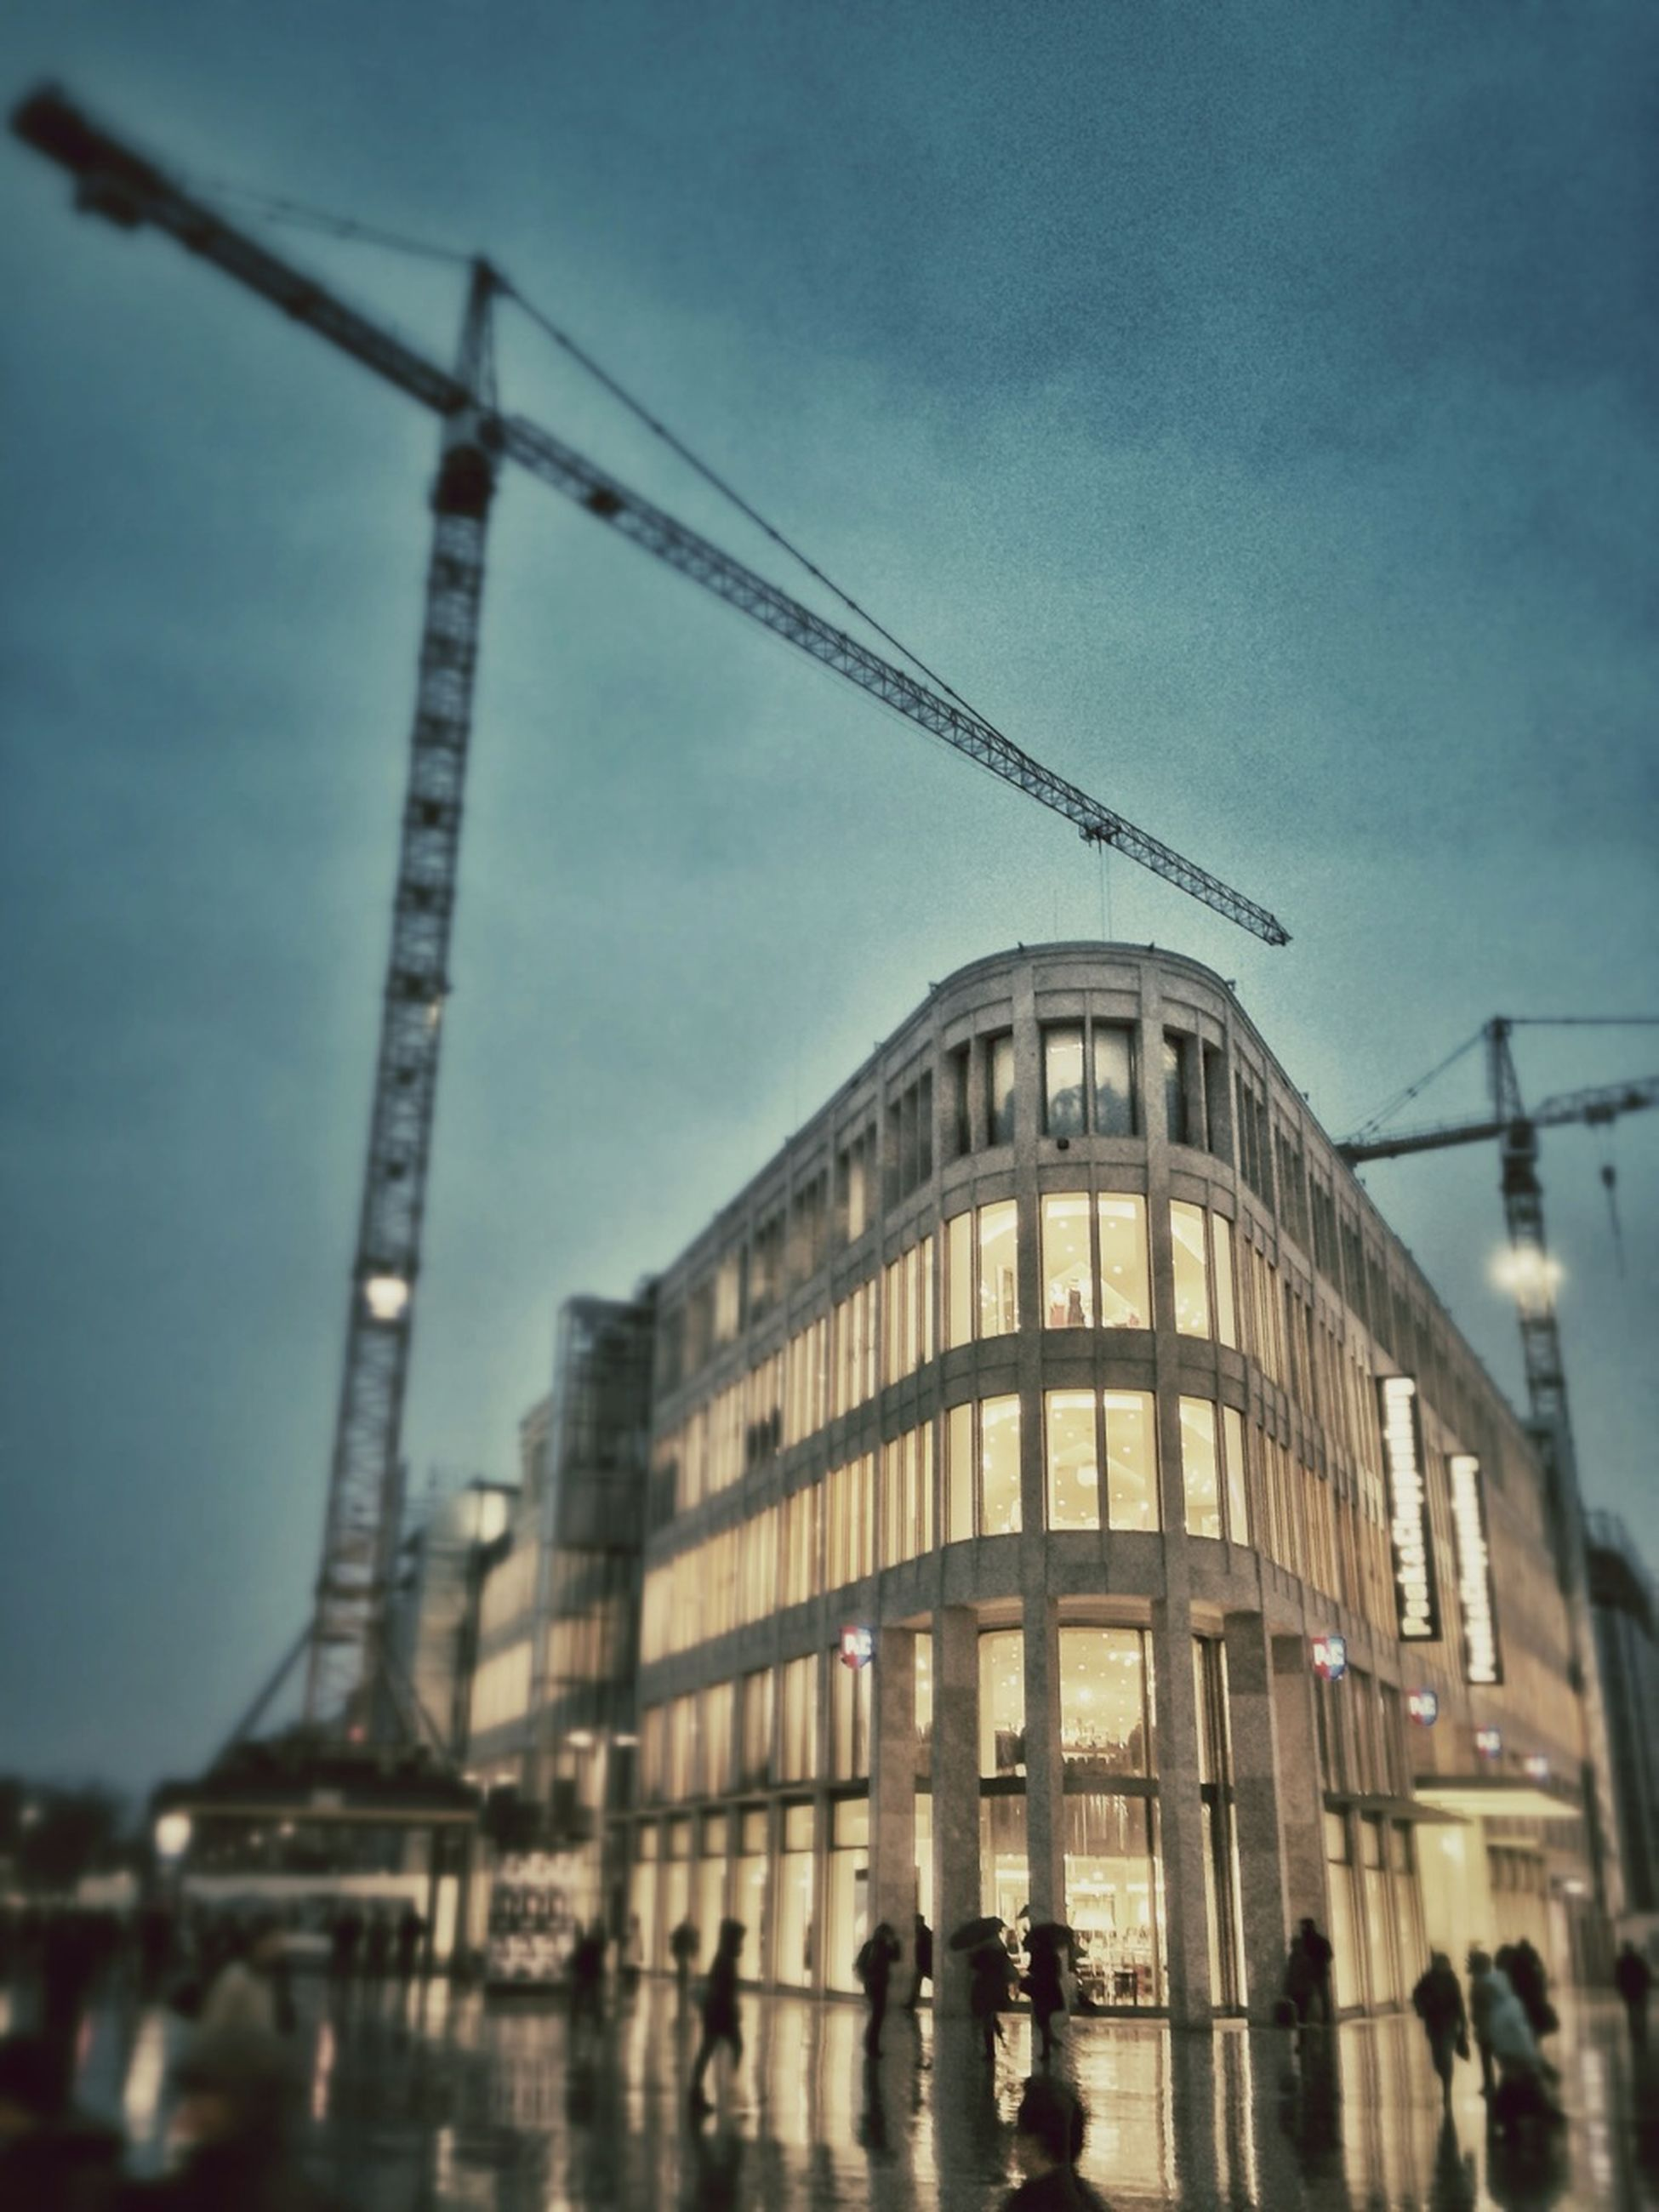 architecture, building exterior, built structure, city, sky, low angle view, building, city life, outdoors, transportation, crane - construction machinery, street, day, men, office building, dusk, street light, incidental people, residential building